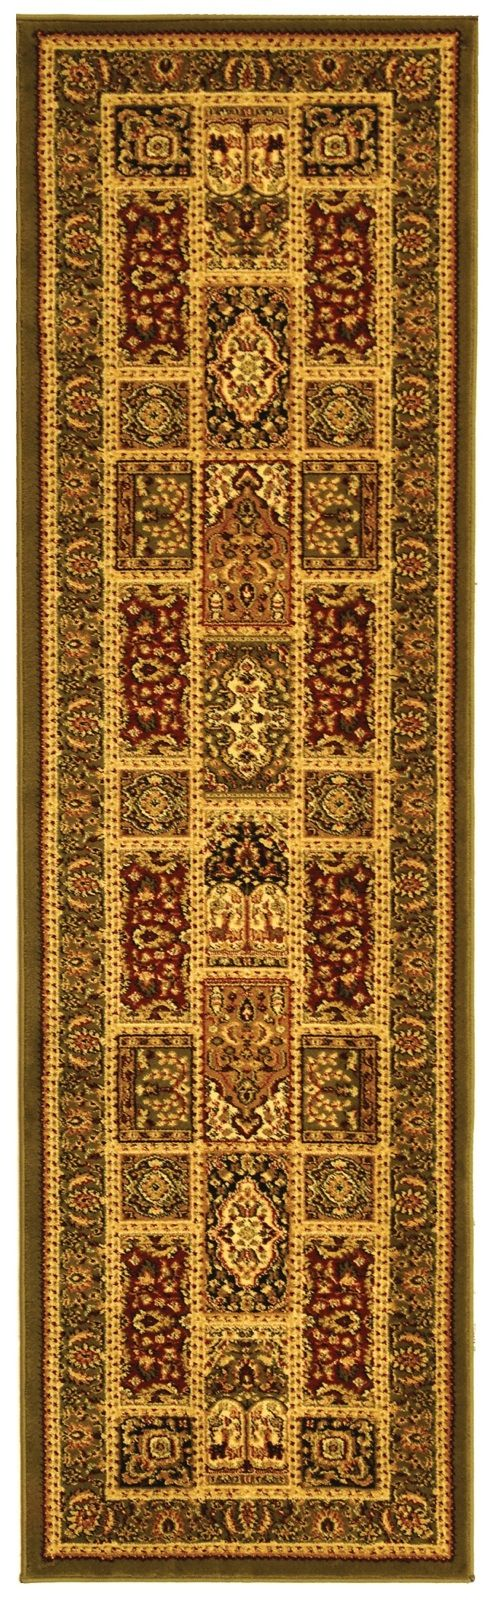 safavieh lyndhurst traditional area rug collection